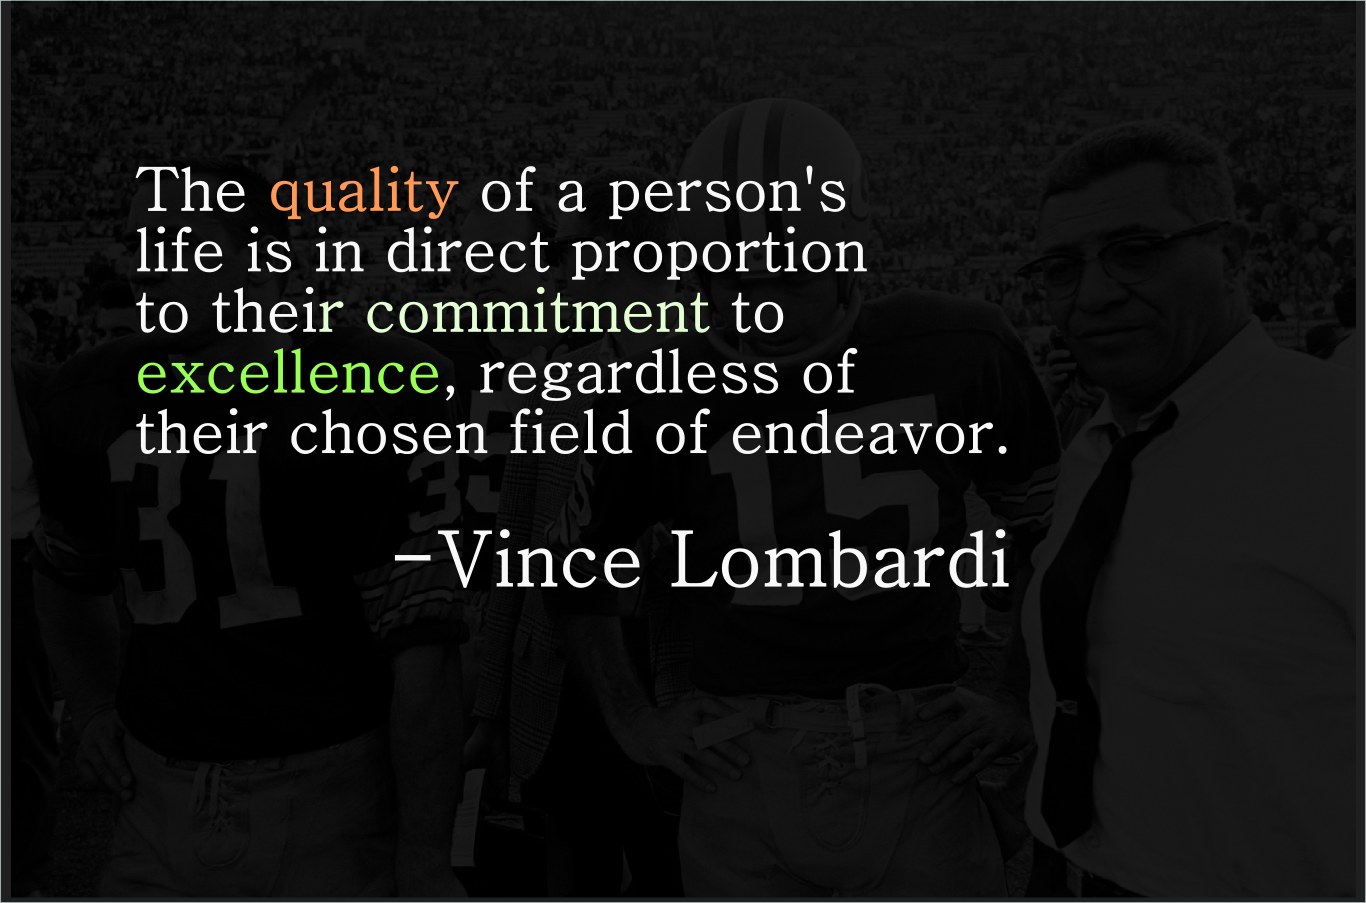 vince-lombardi-quotes-16